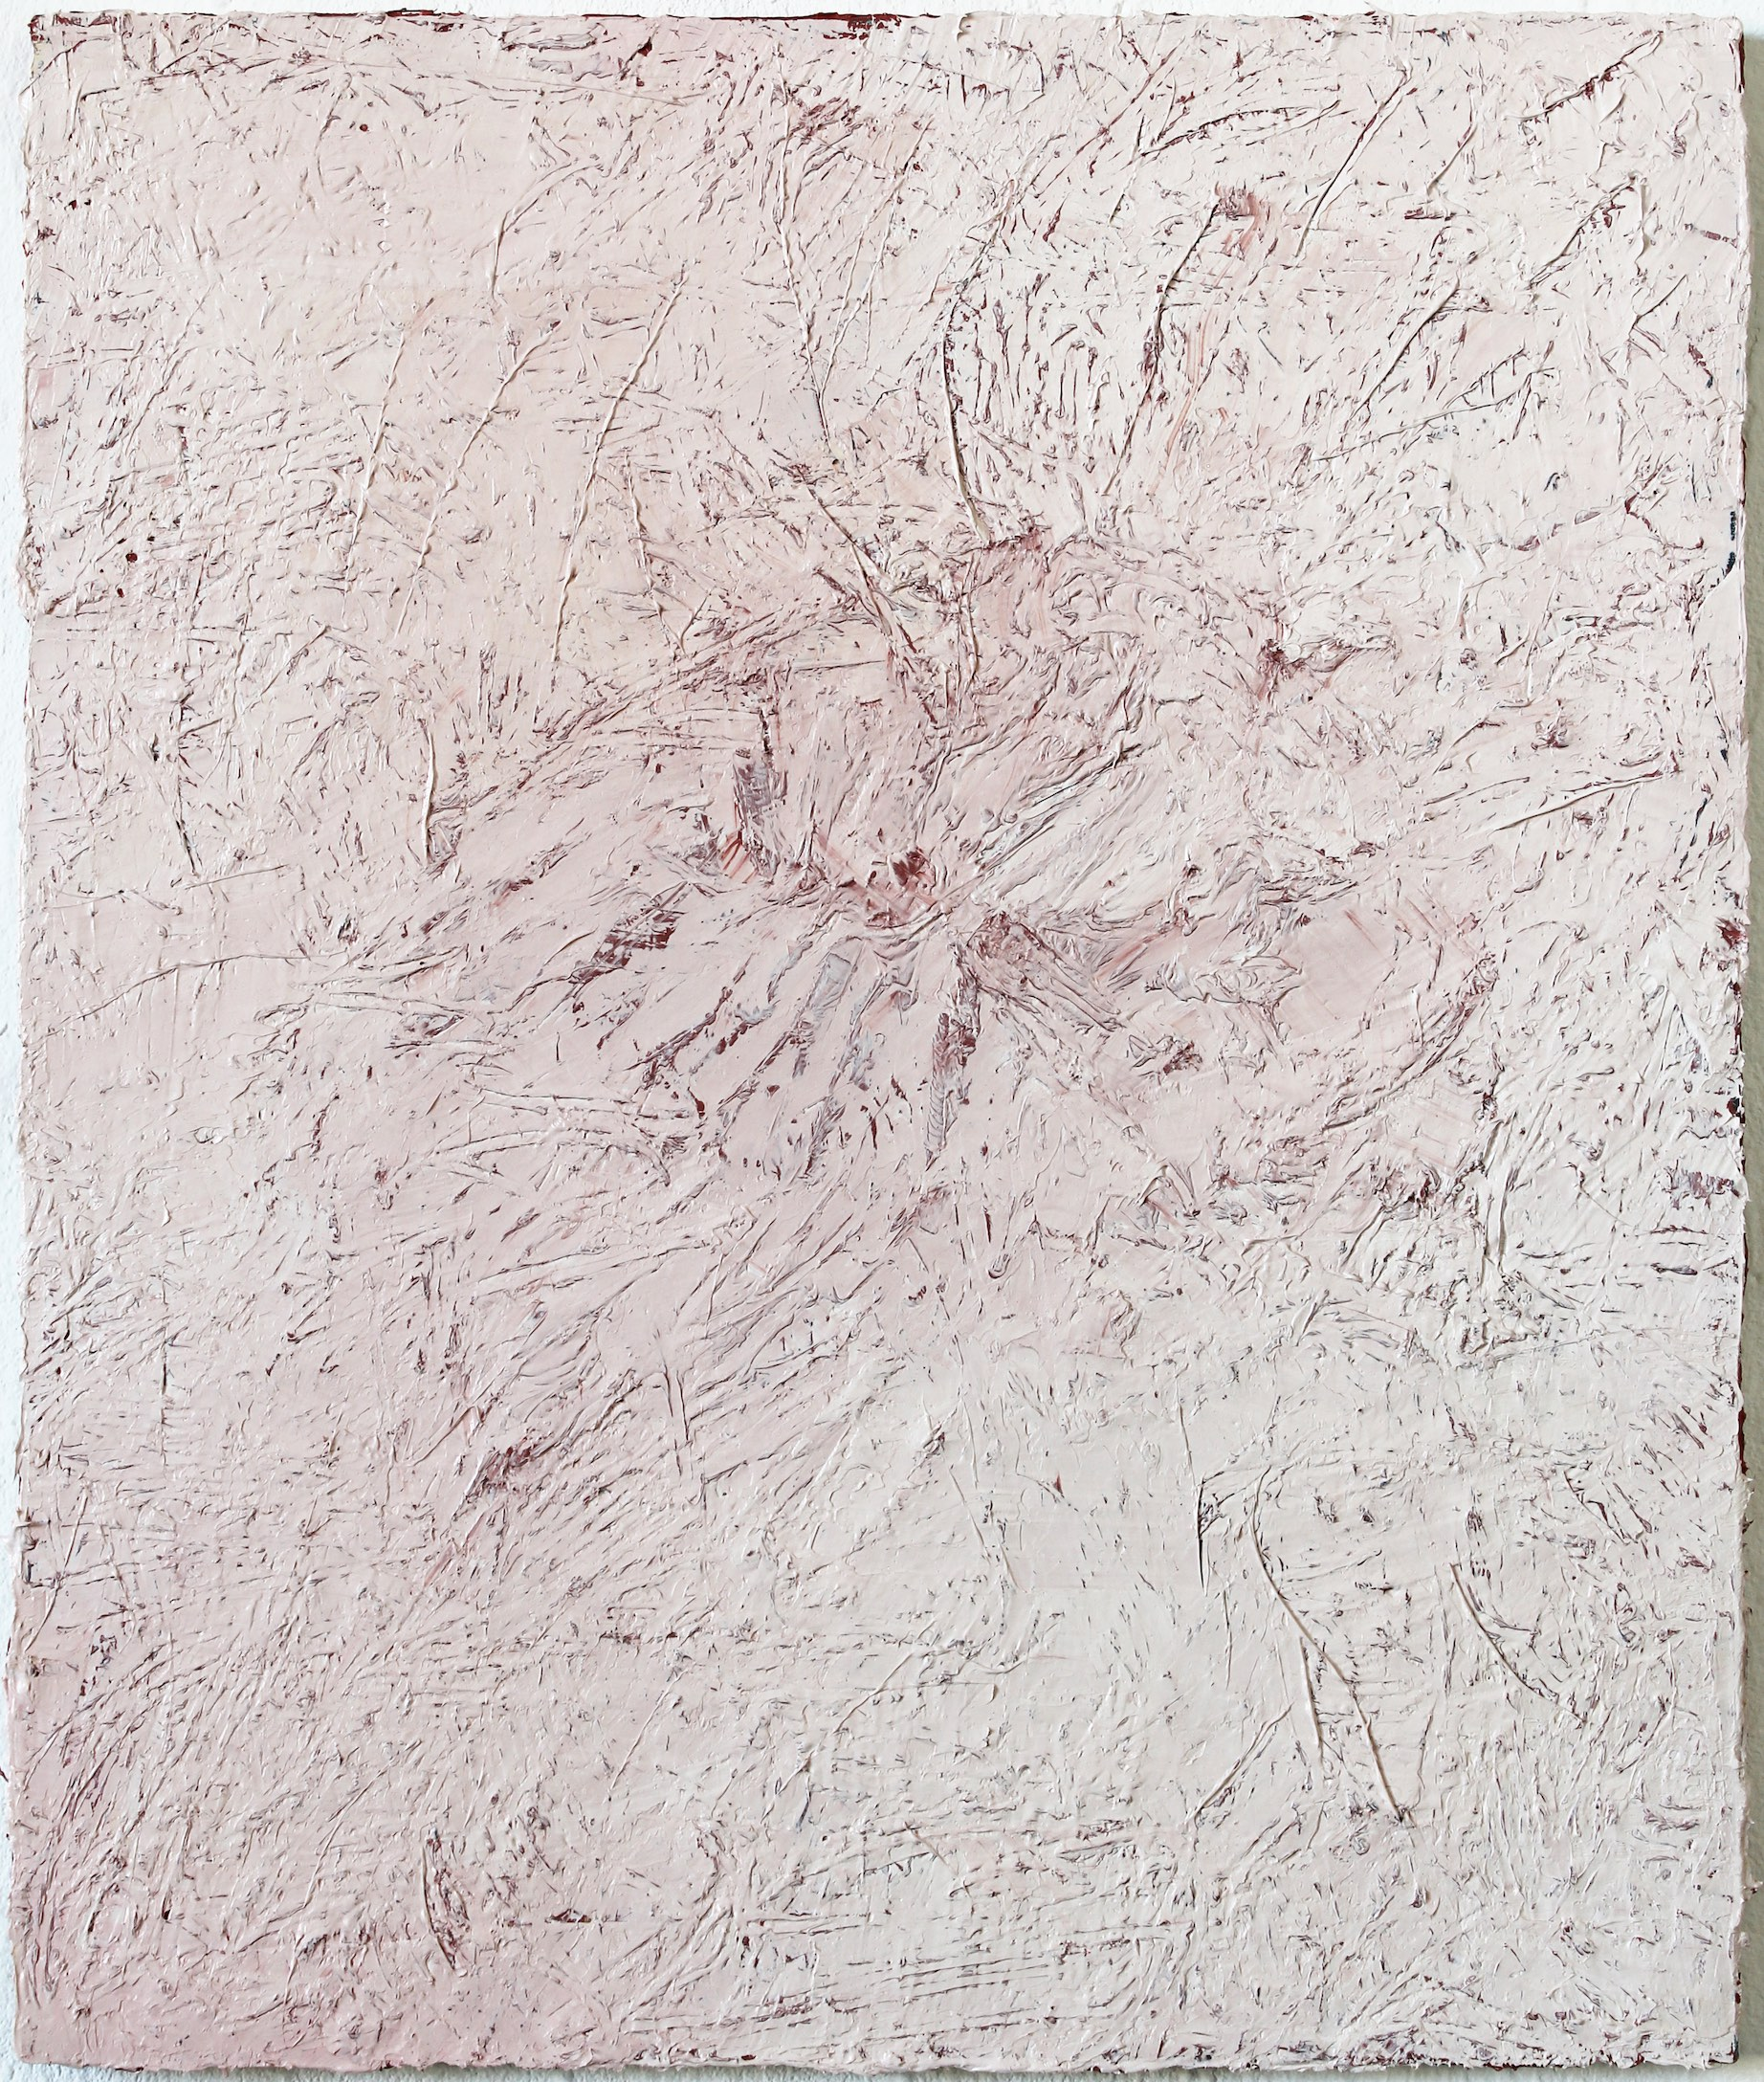 Felix Becker_untitled (Flesh blossom)_2020_oil on canvas_web